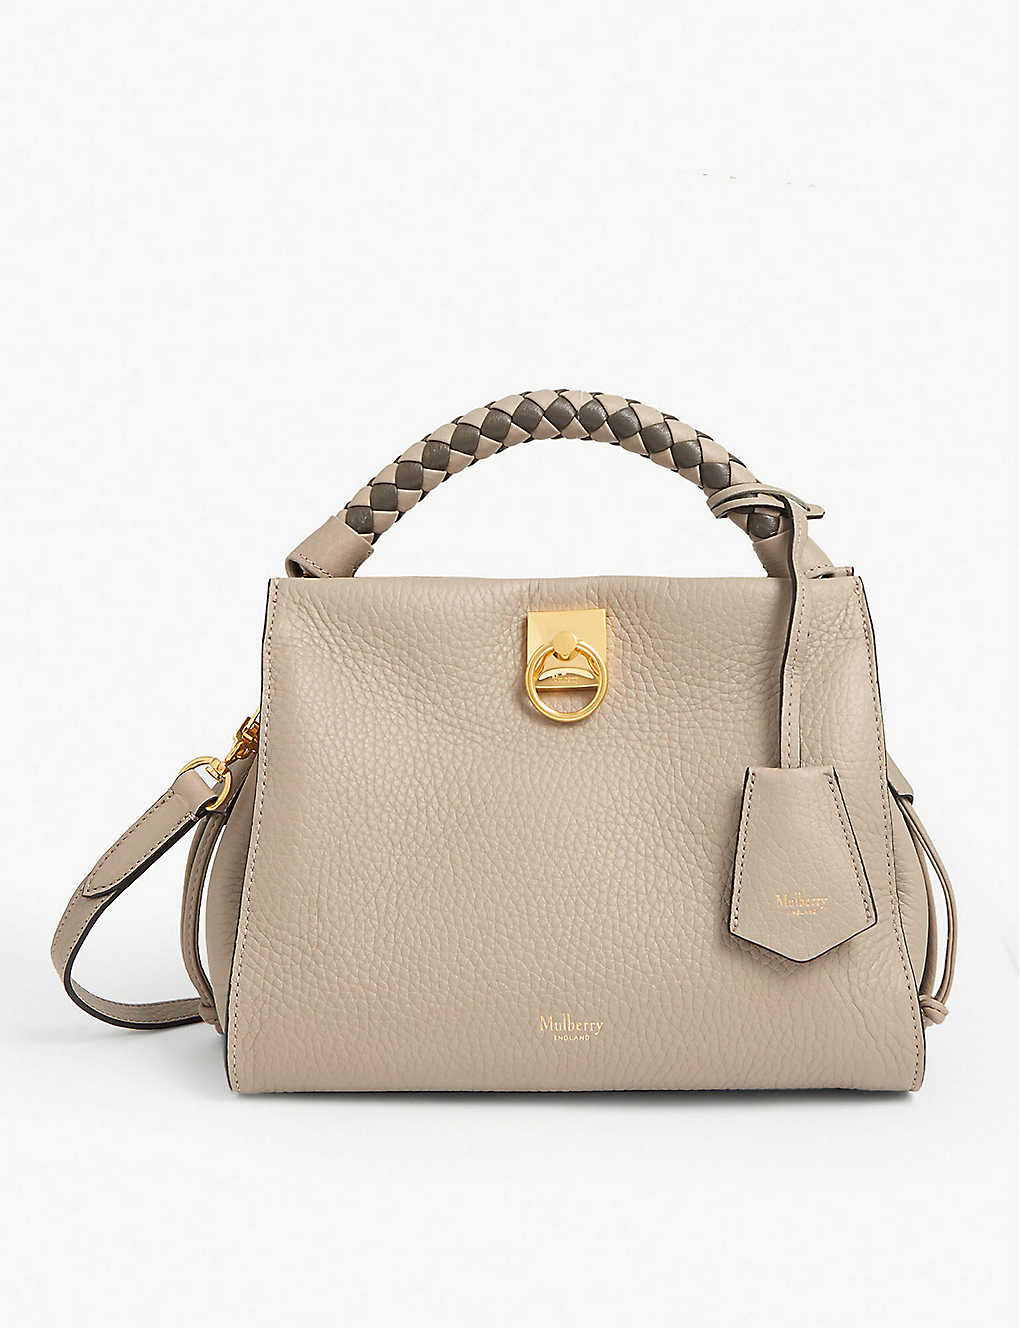 MULBERRY: Iris leather shoulder bag